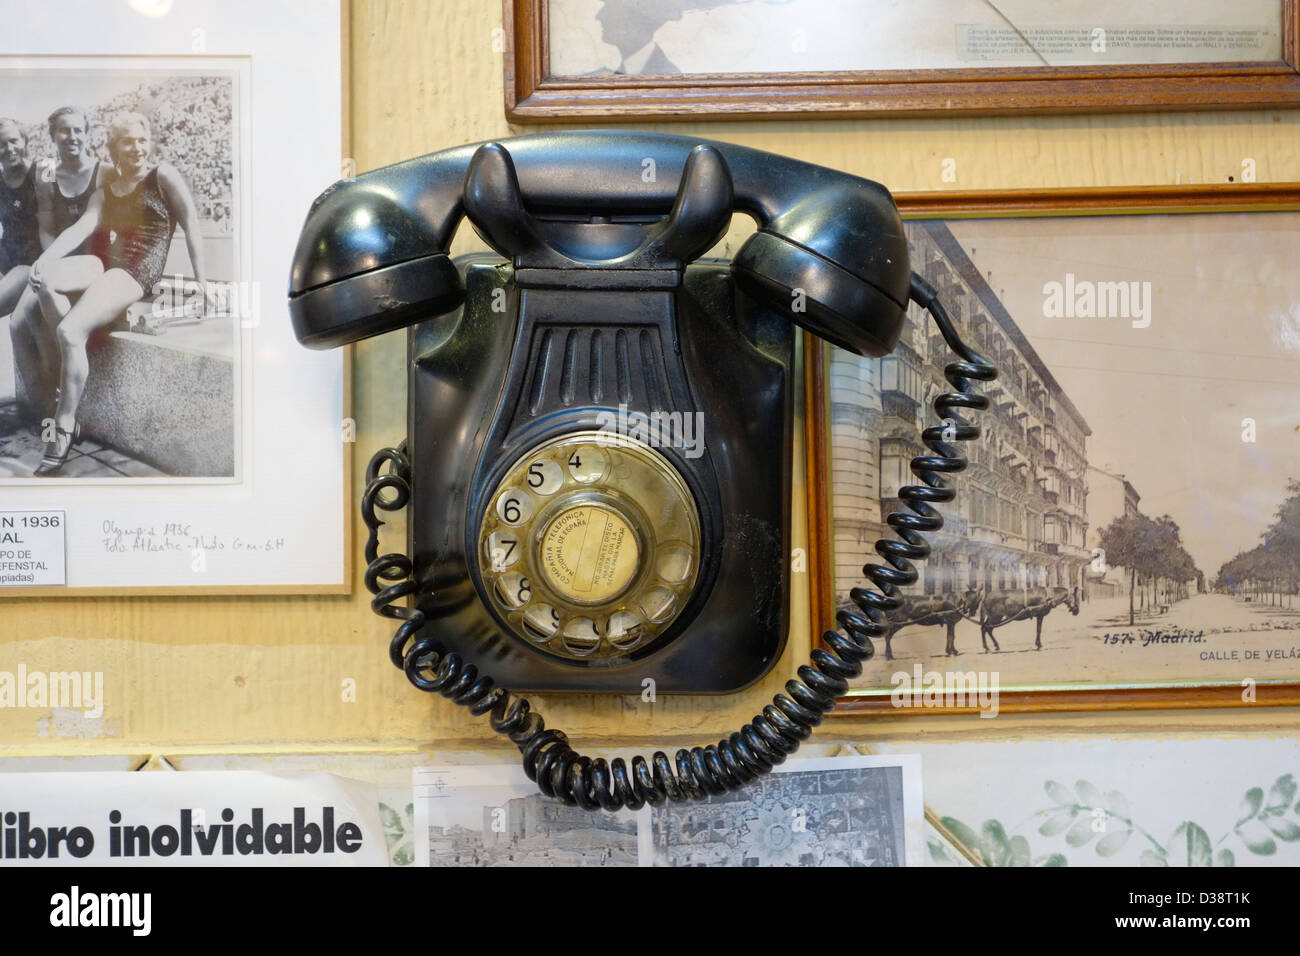 hight resolution of old antique telephone madrid spain communication dated phone